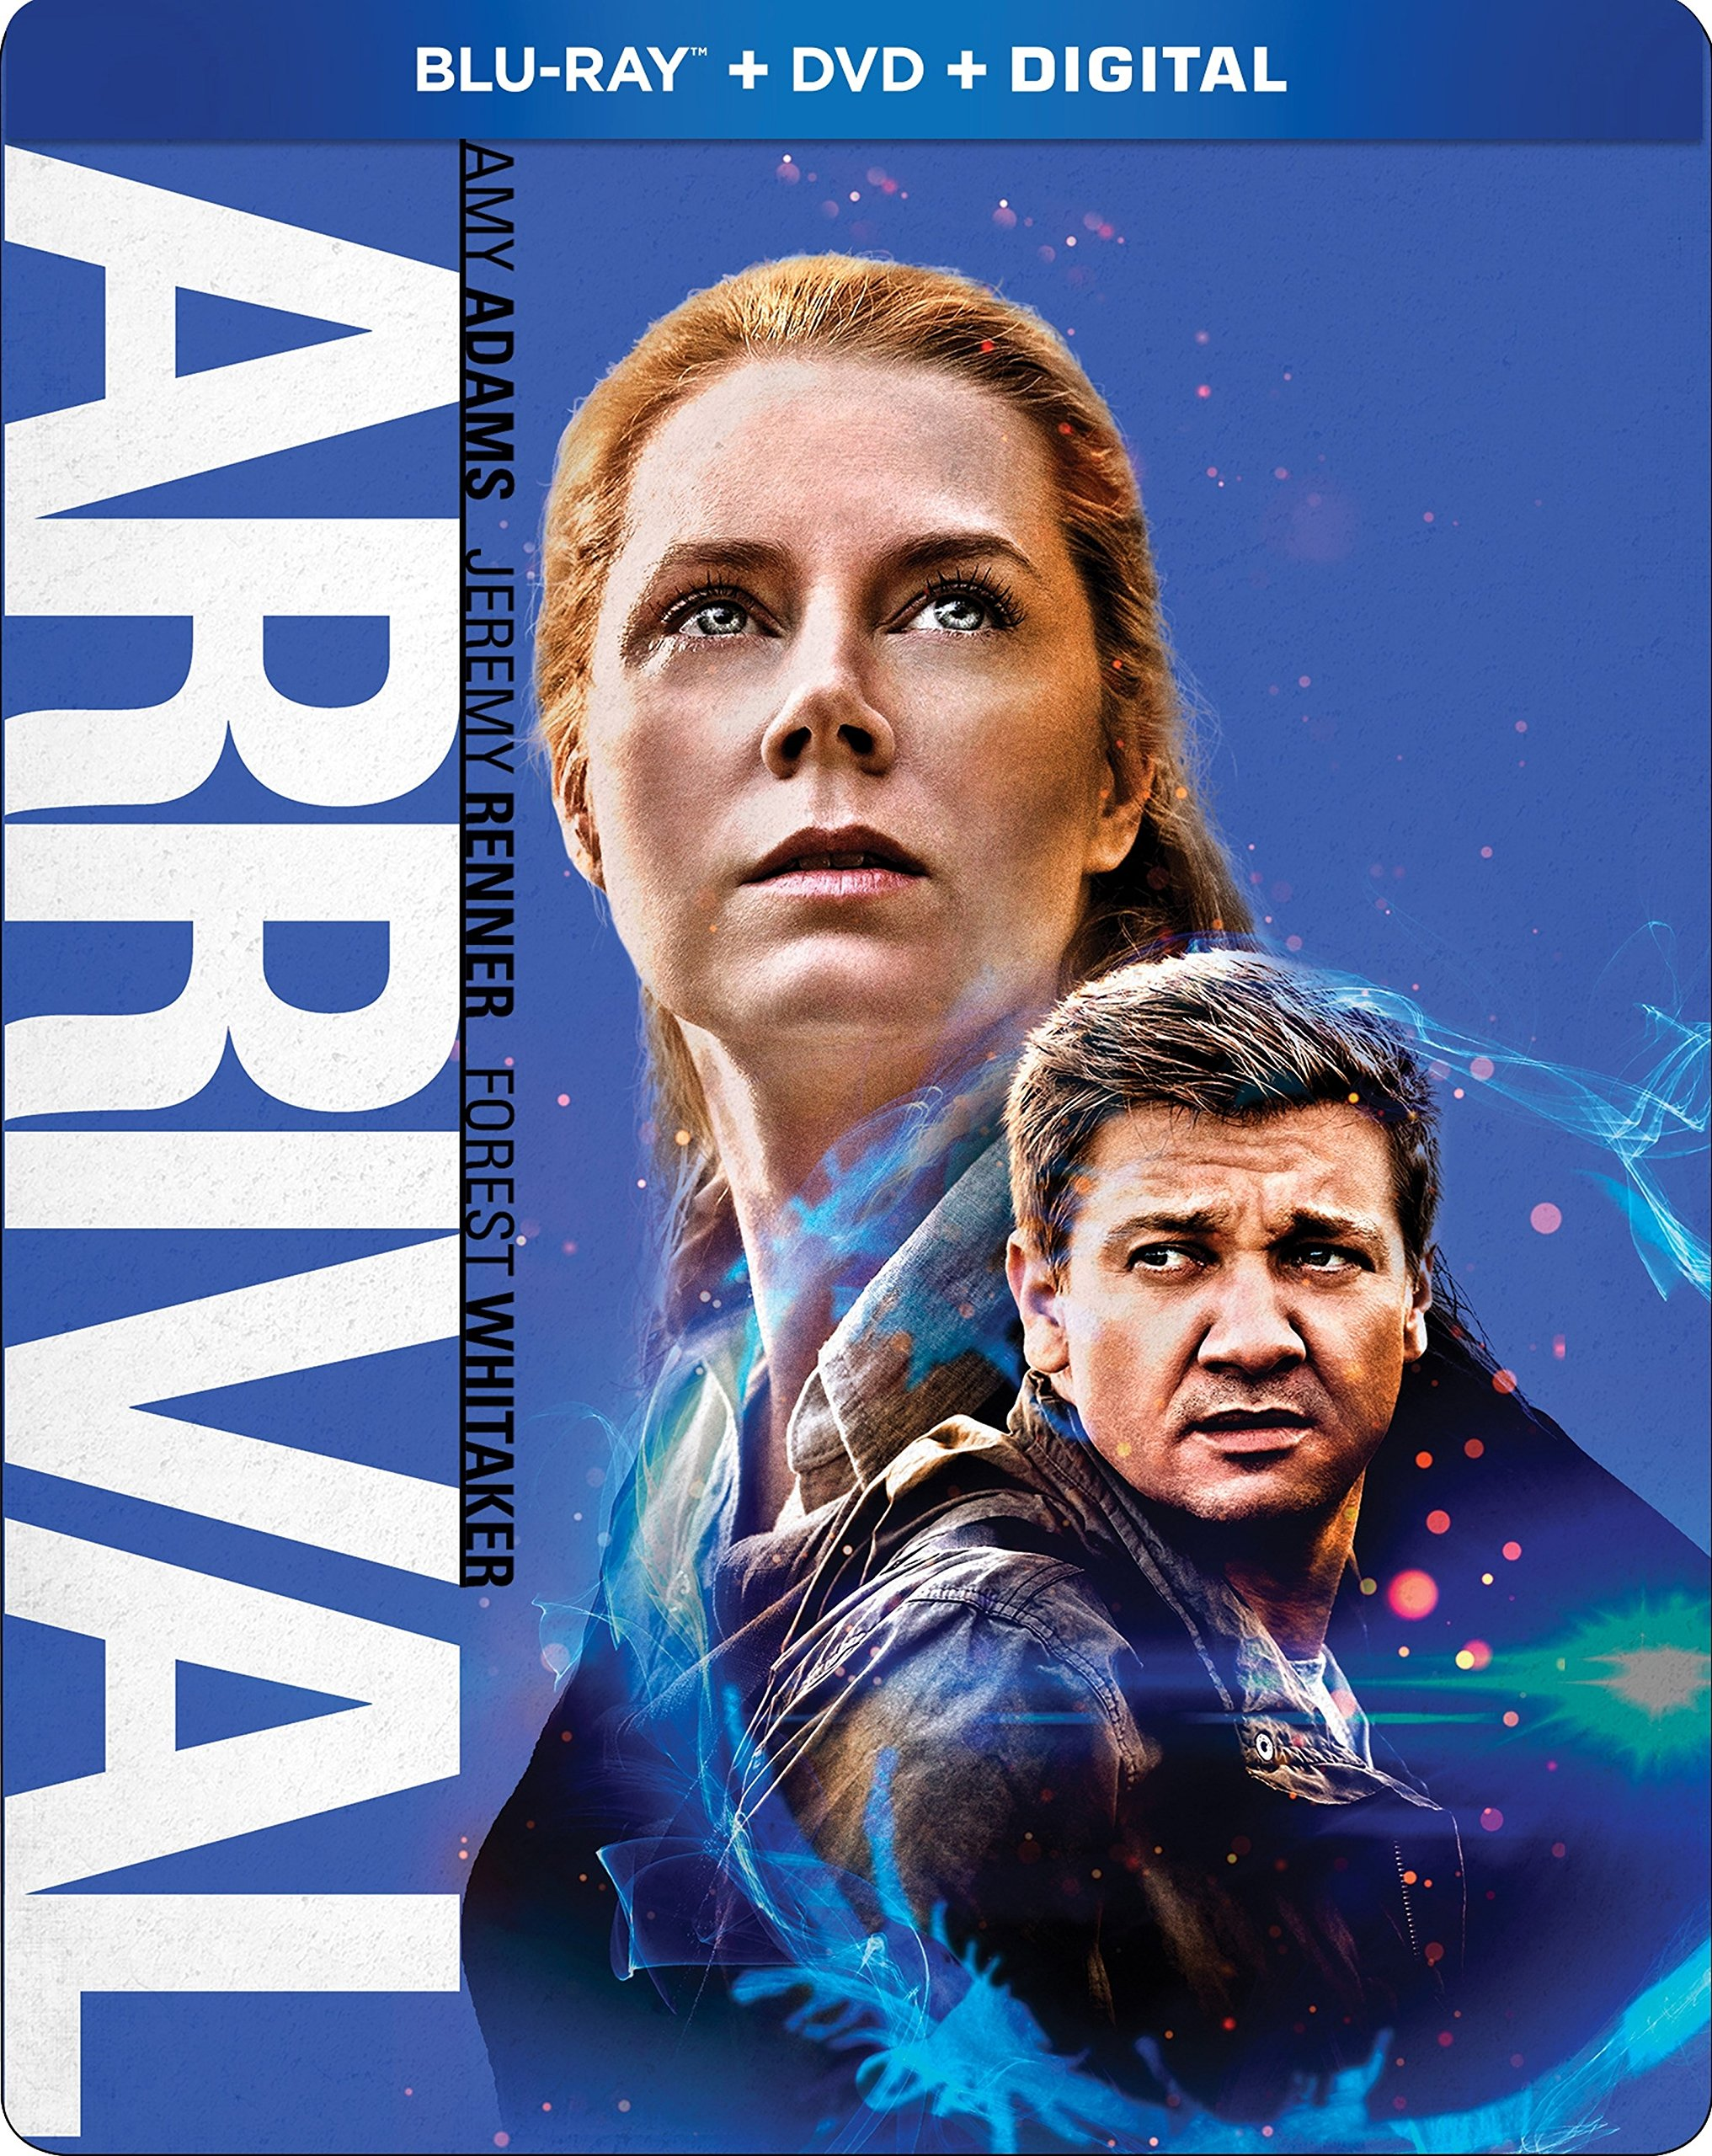 Blu-ray : Arrival (Steelbook) (Steelbook, Widescreen, 2 Pack, Amaray Case, Dubbed)